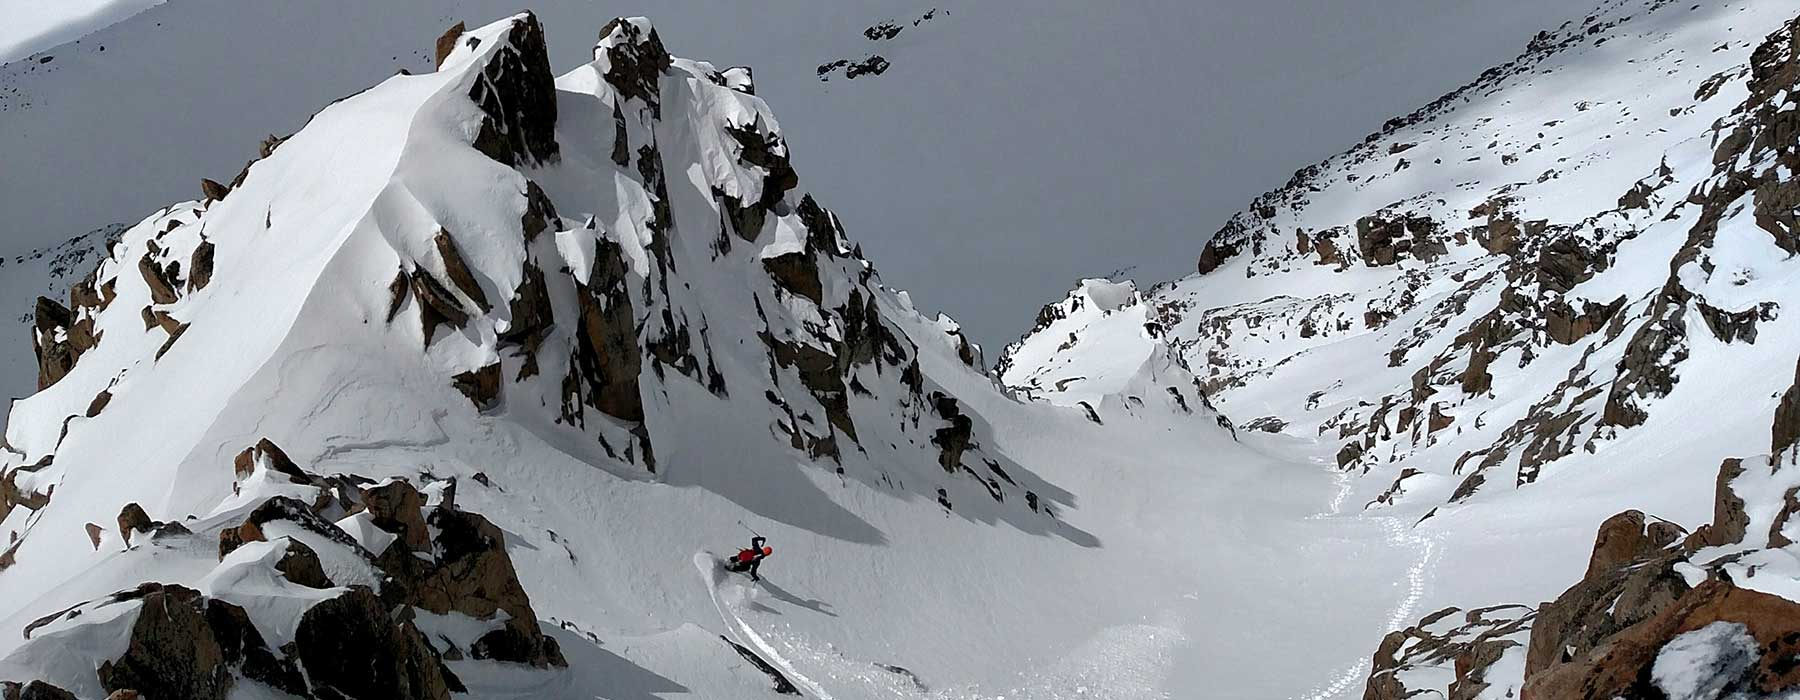 Skiing Granite Peak